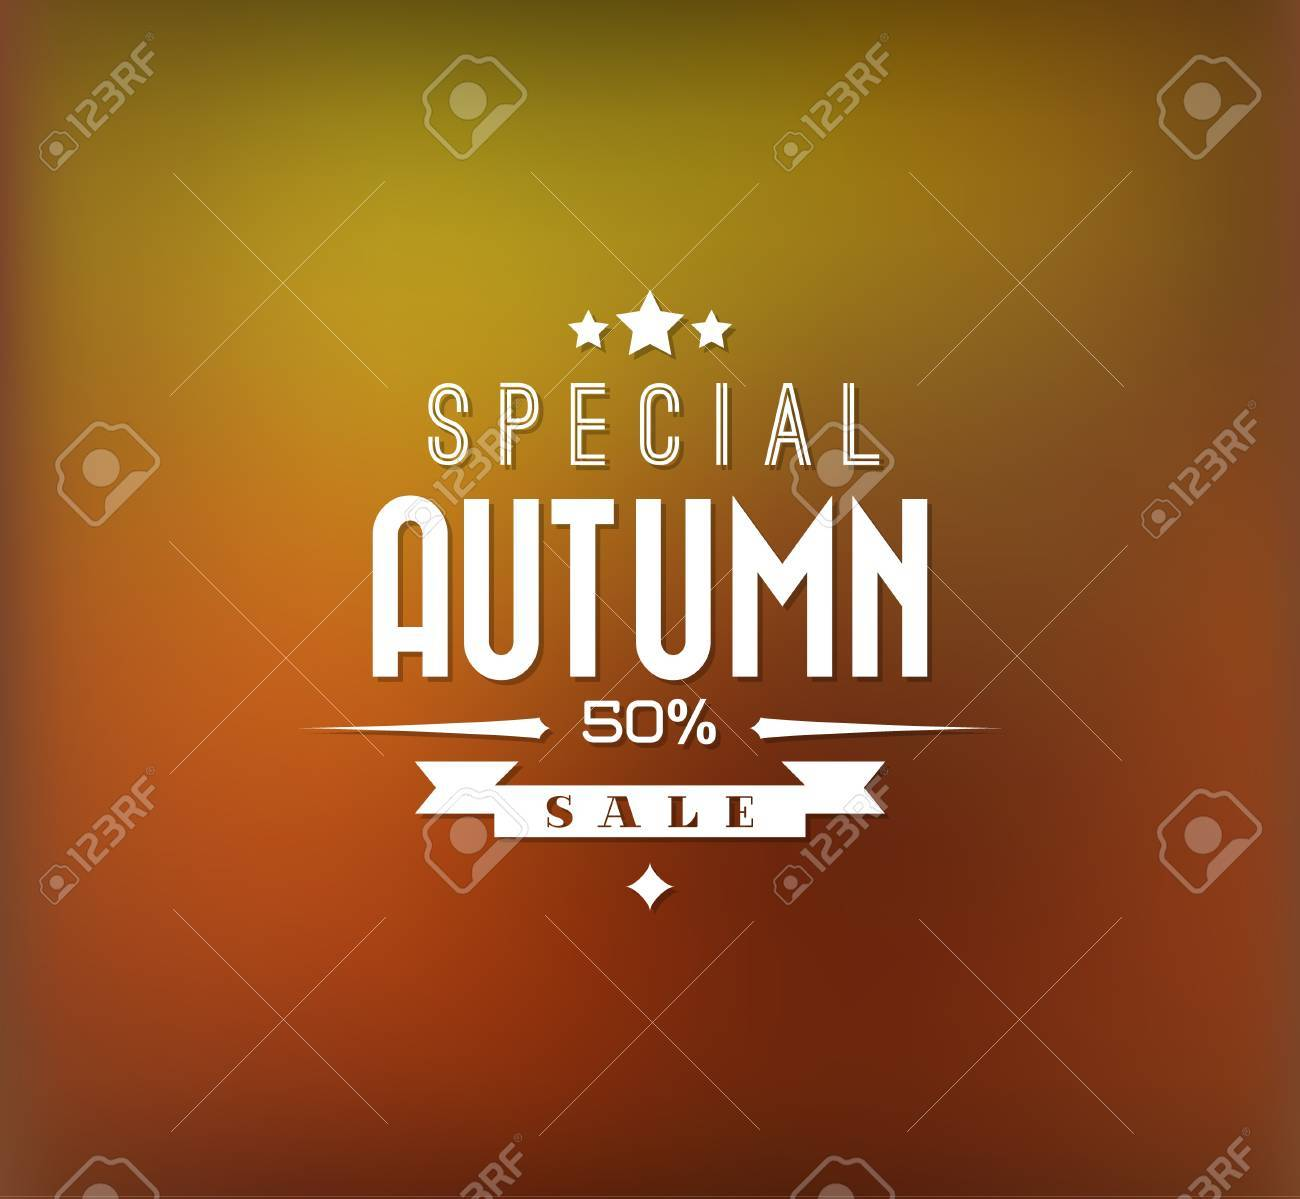 Autumn sale retro poster with abstract blurred fall background - 20616972